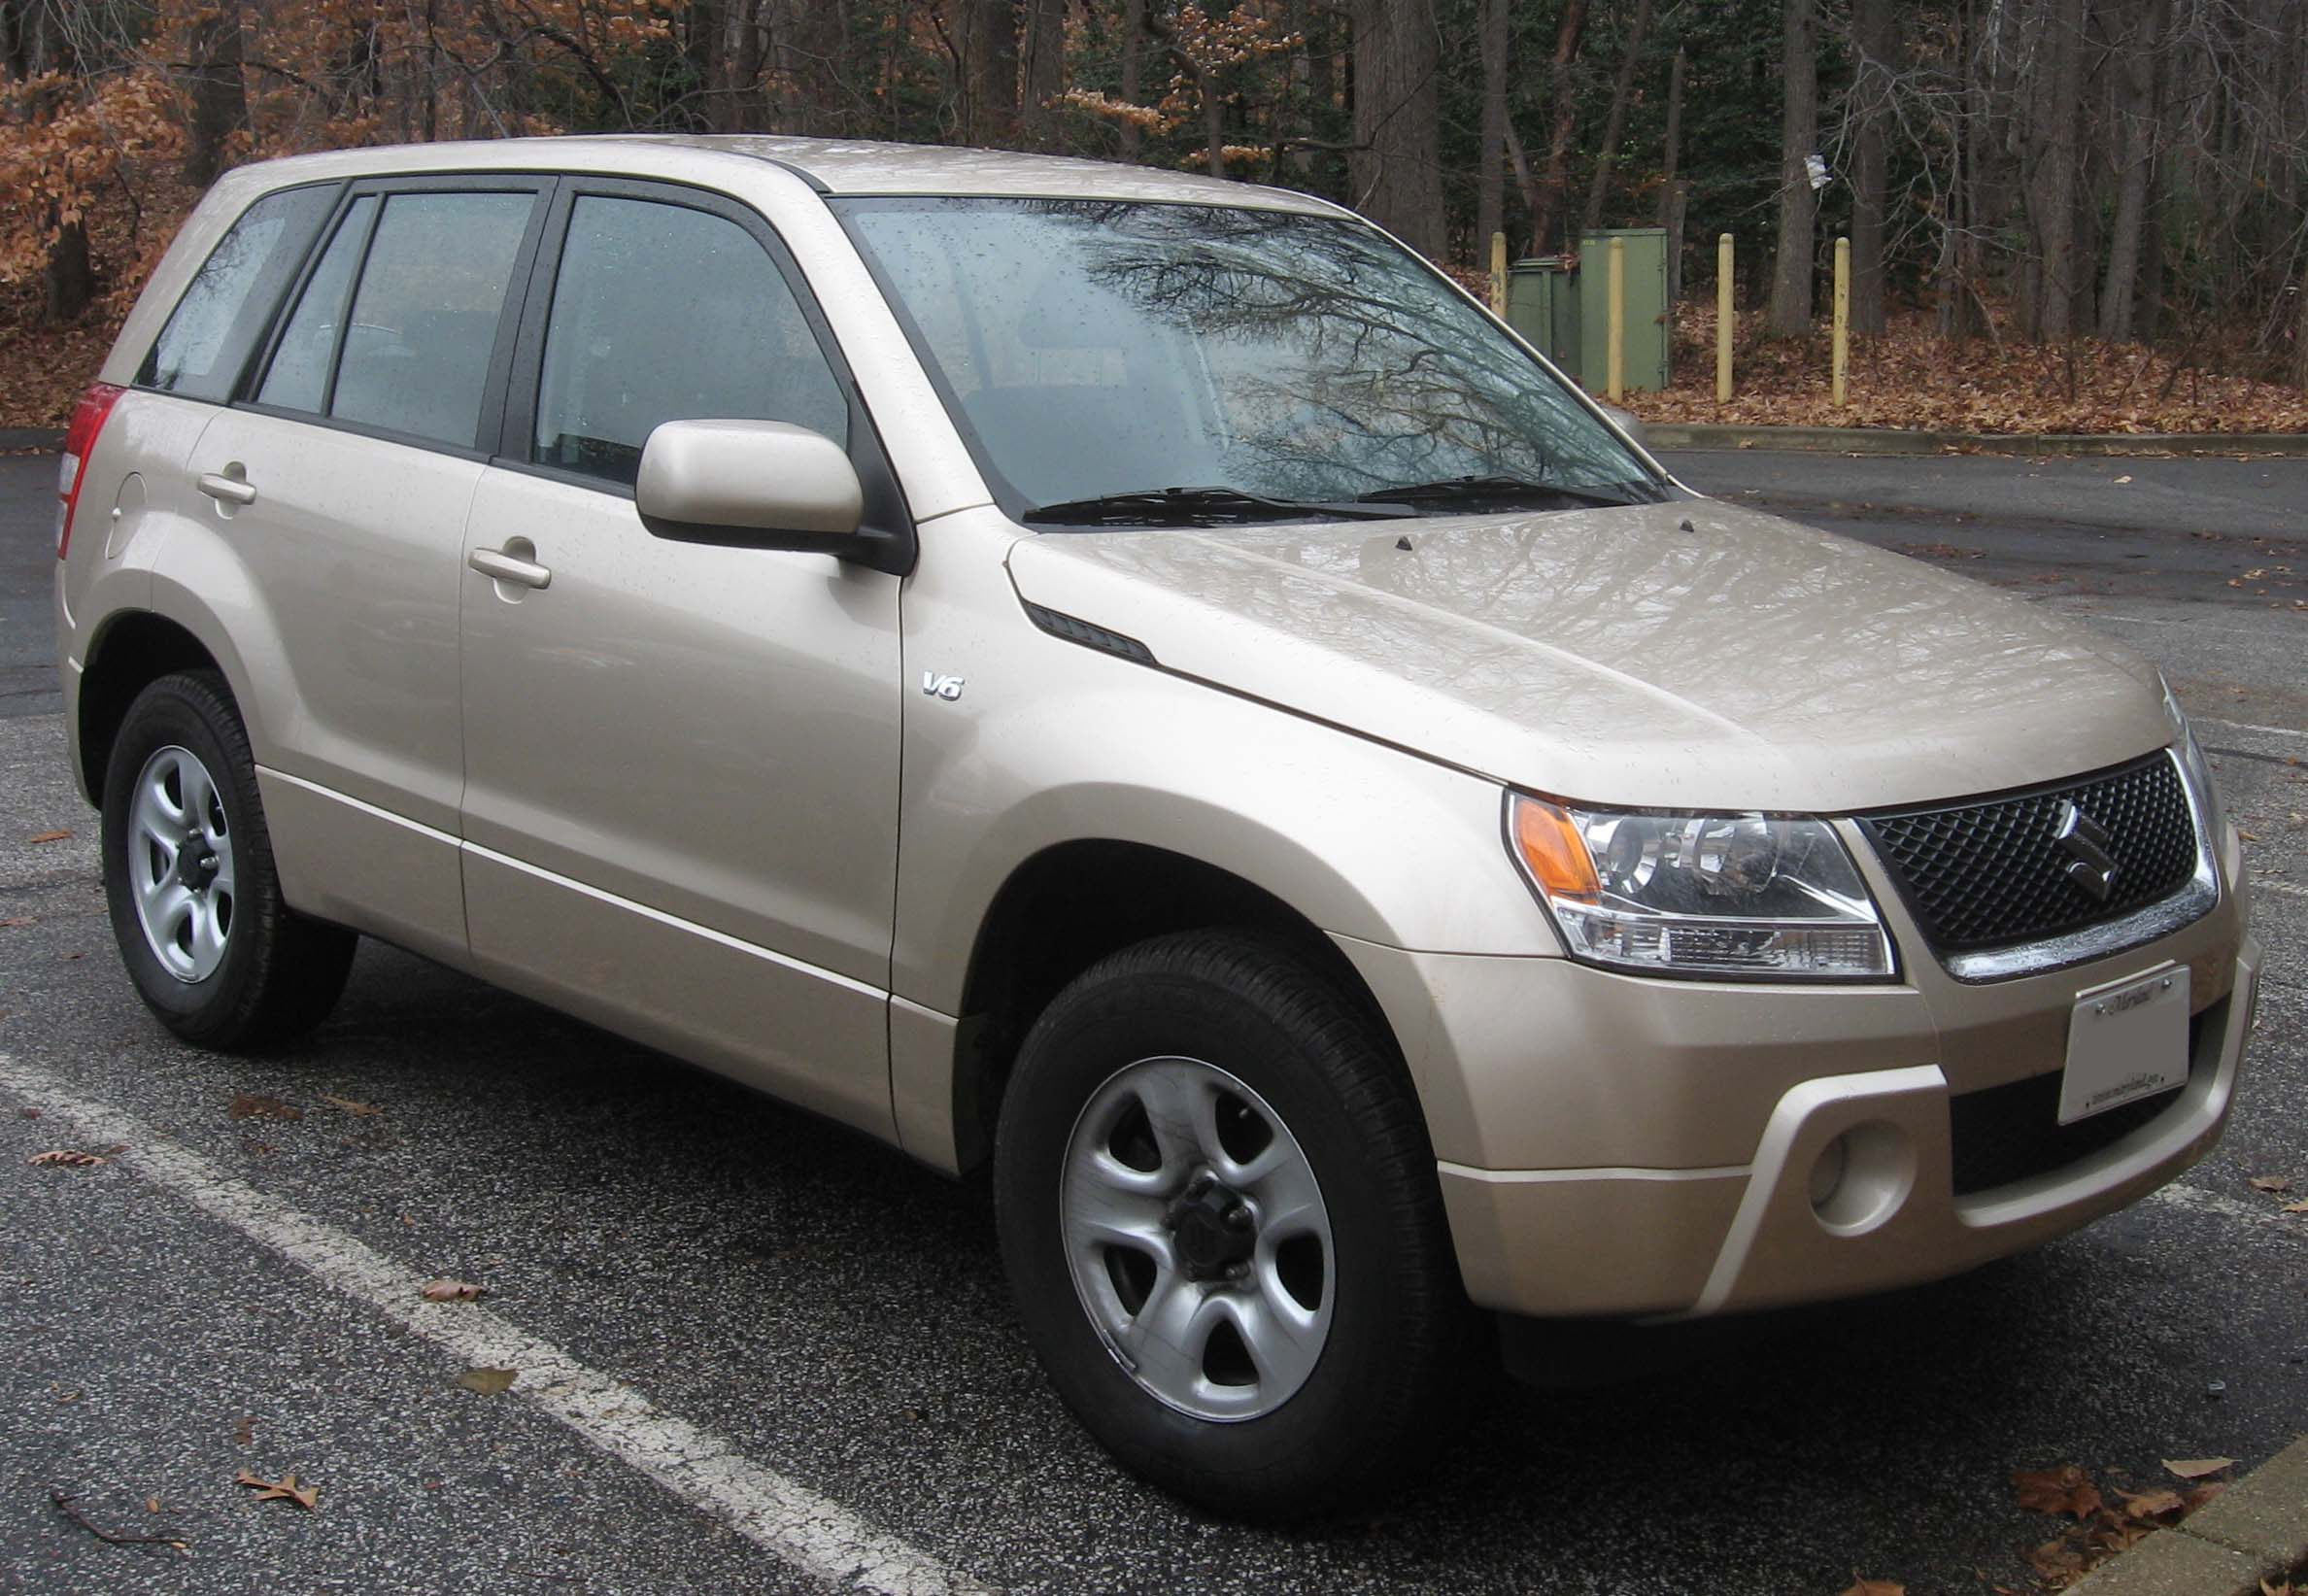 file 2nd suzuki grand vitara wikimedia mons